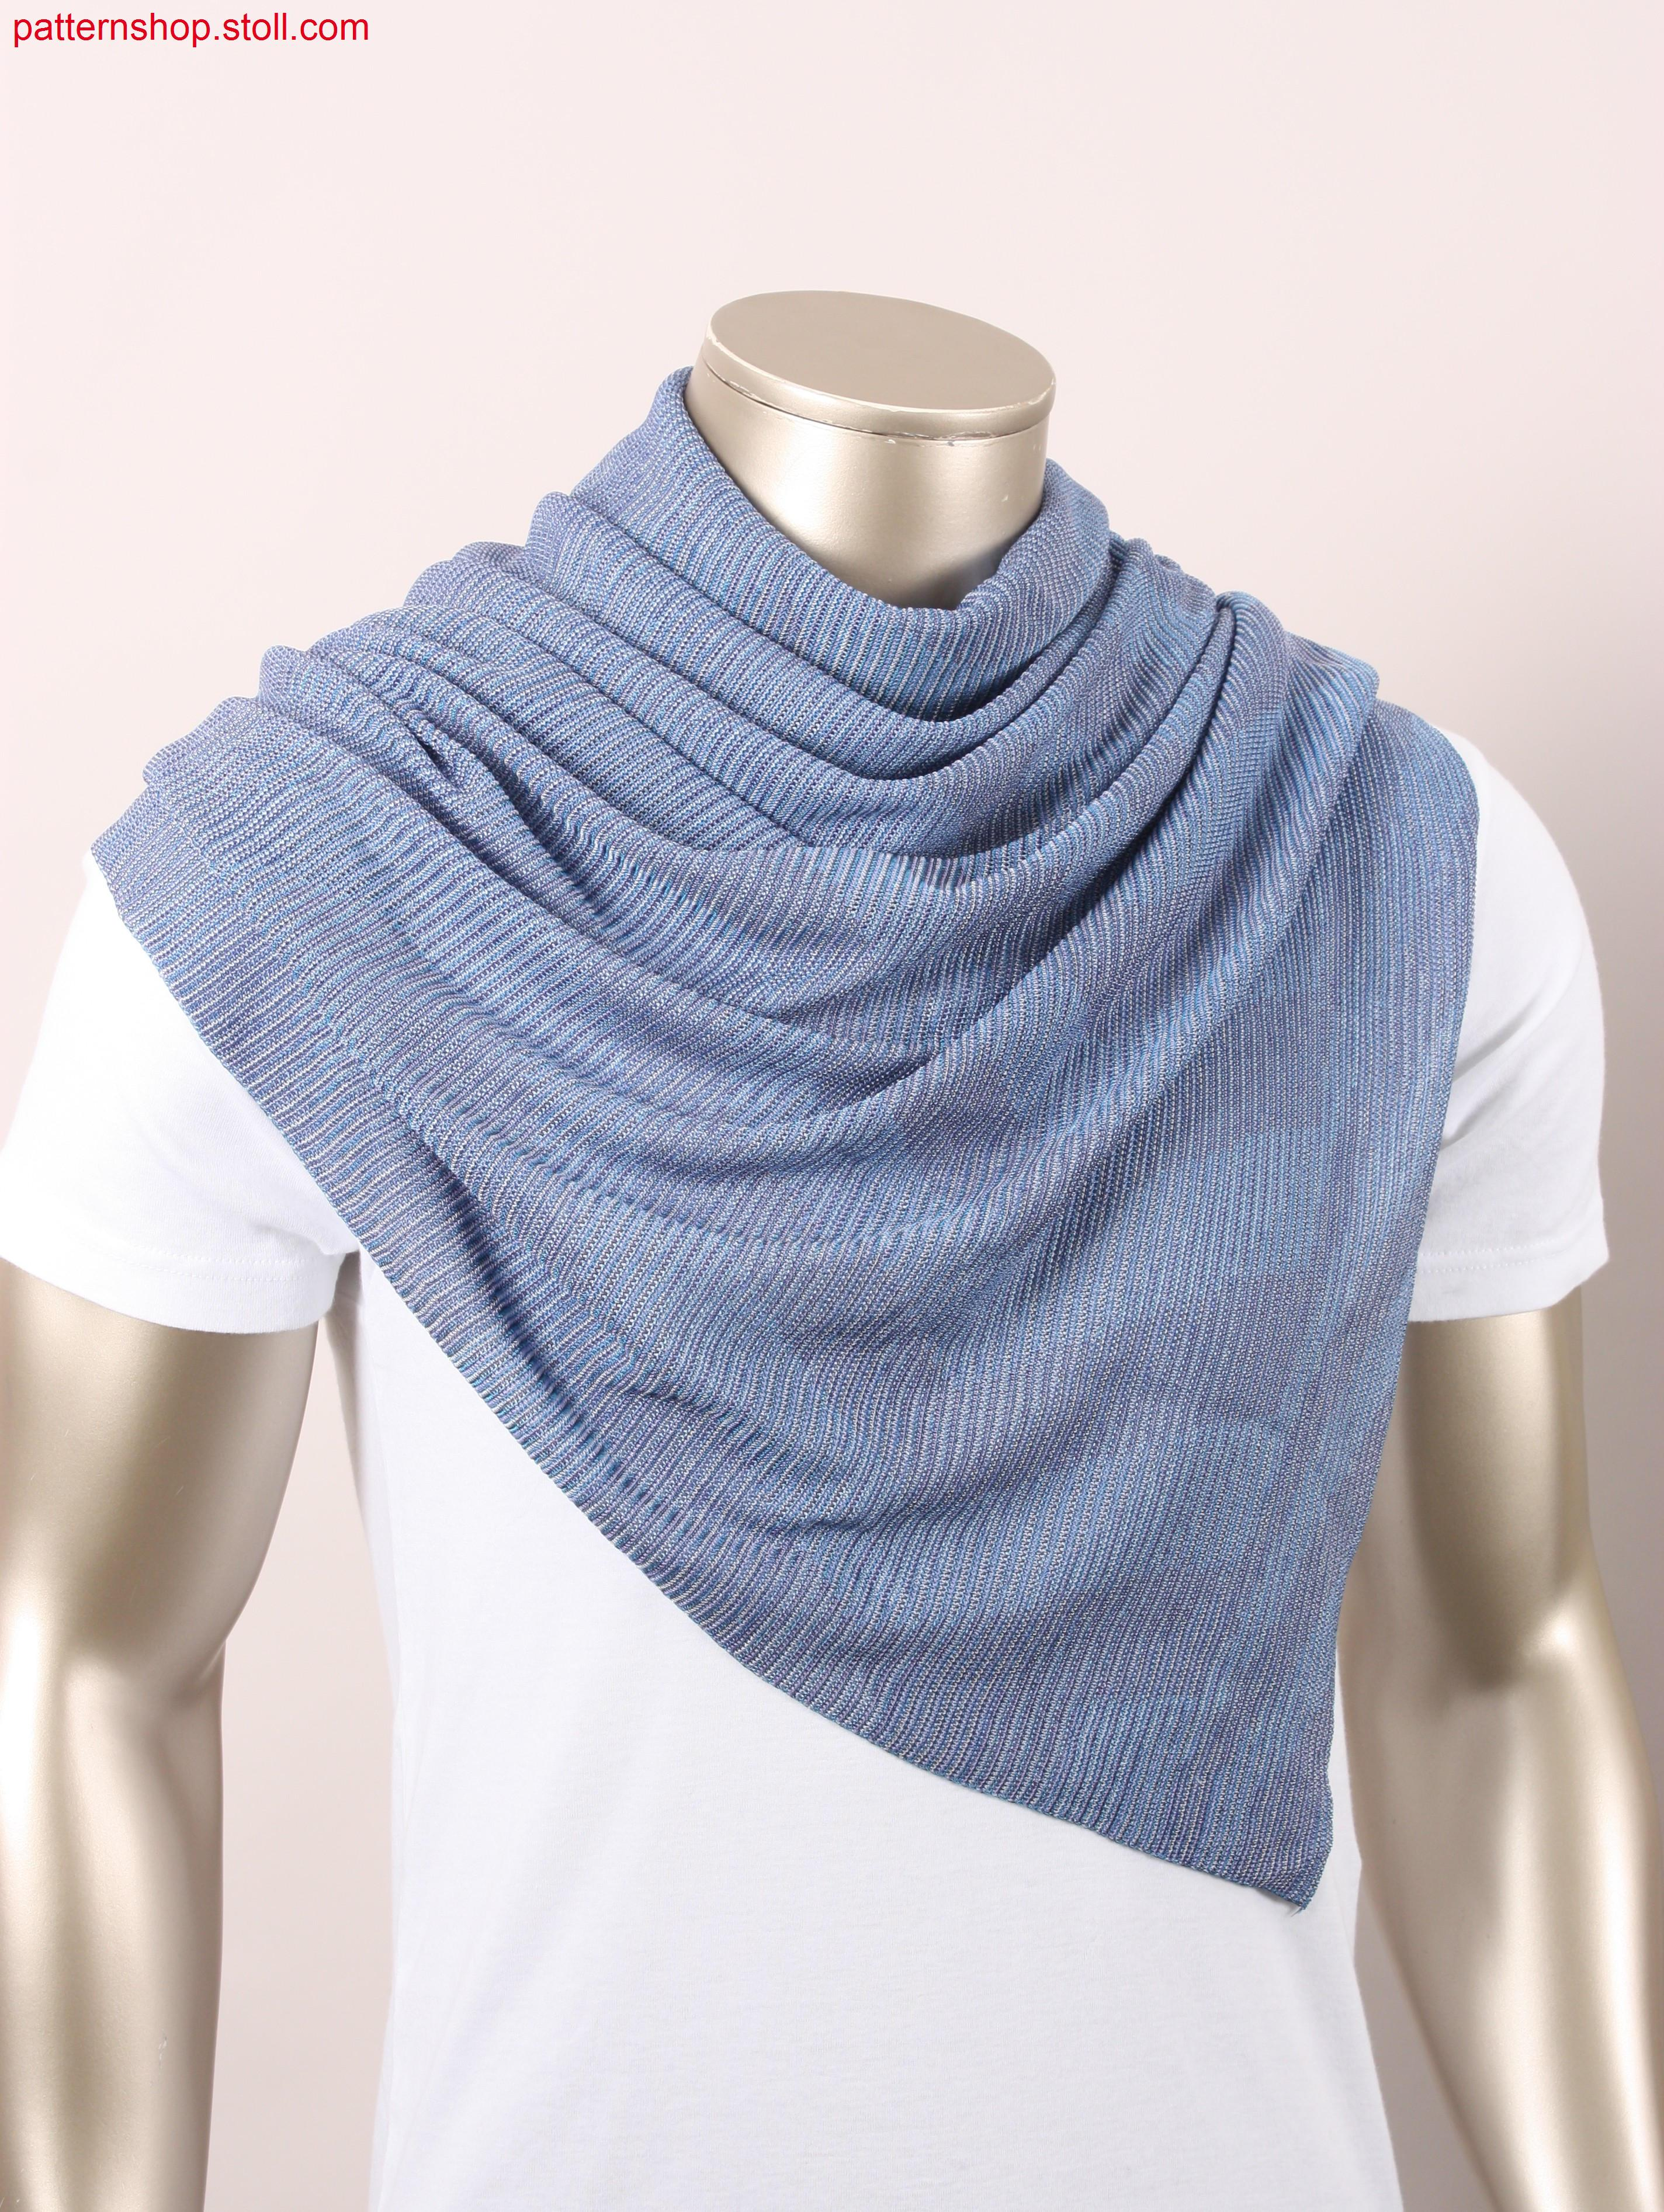 Download 1410169.pdf · Download Picture  Foulard in inverse plated striped  tubular transfer. f8b999cade9